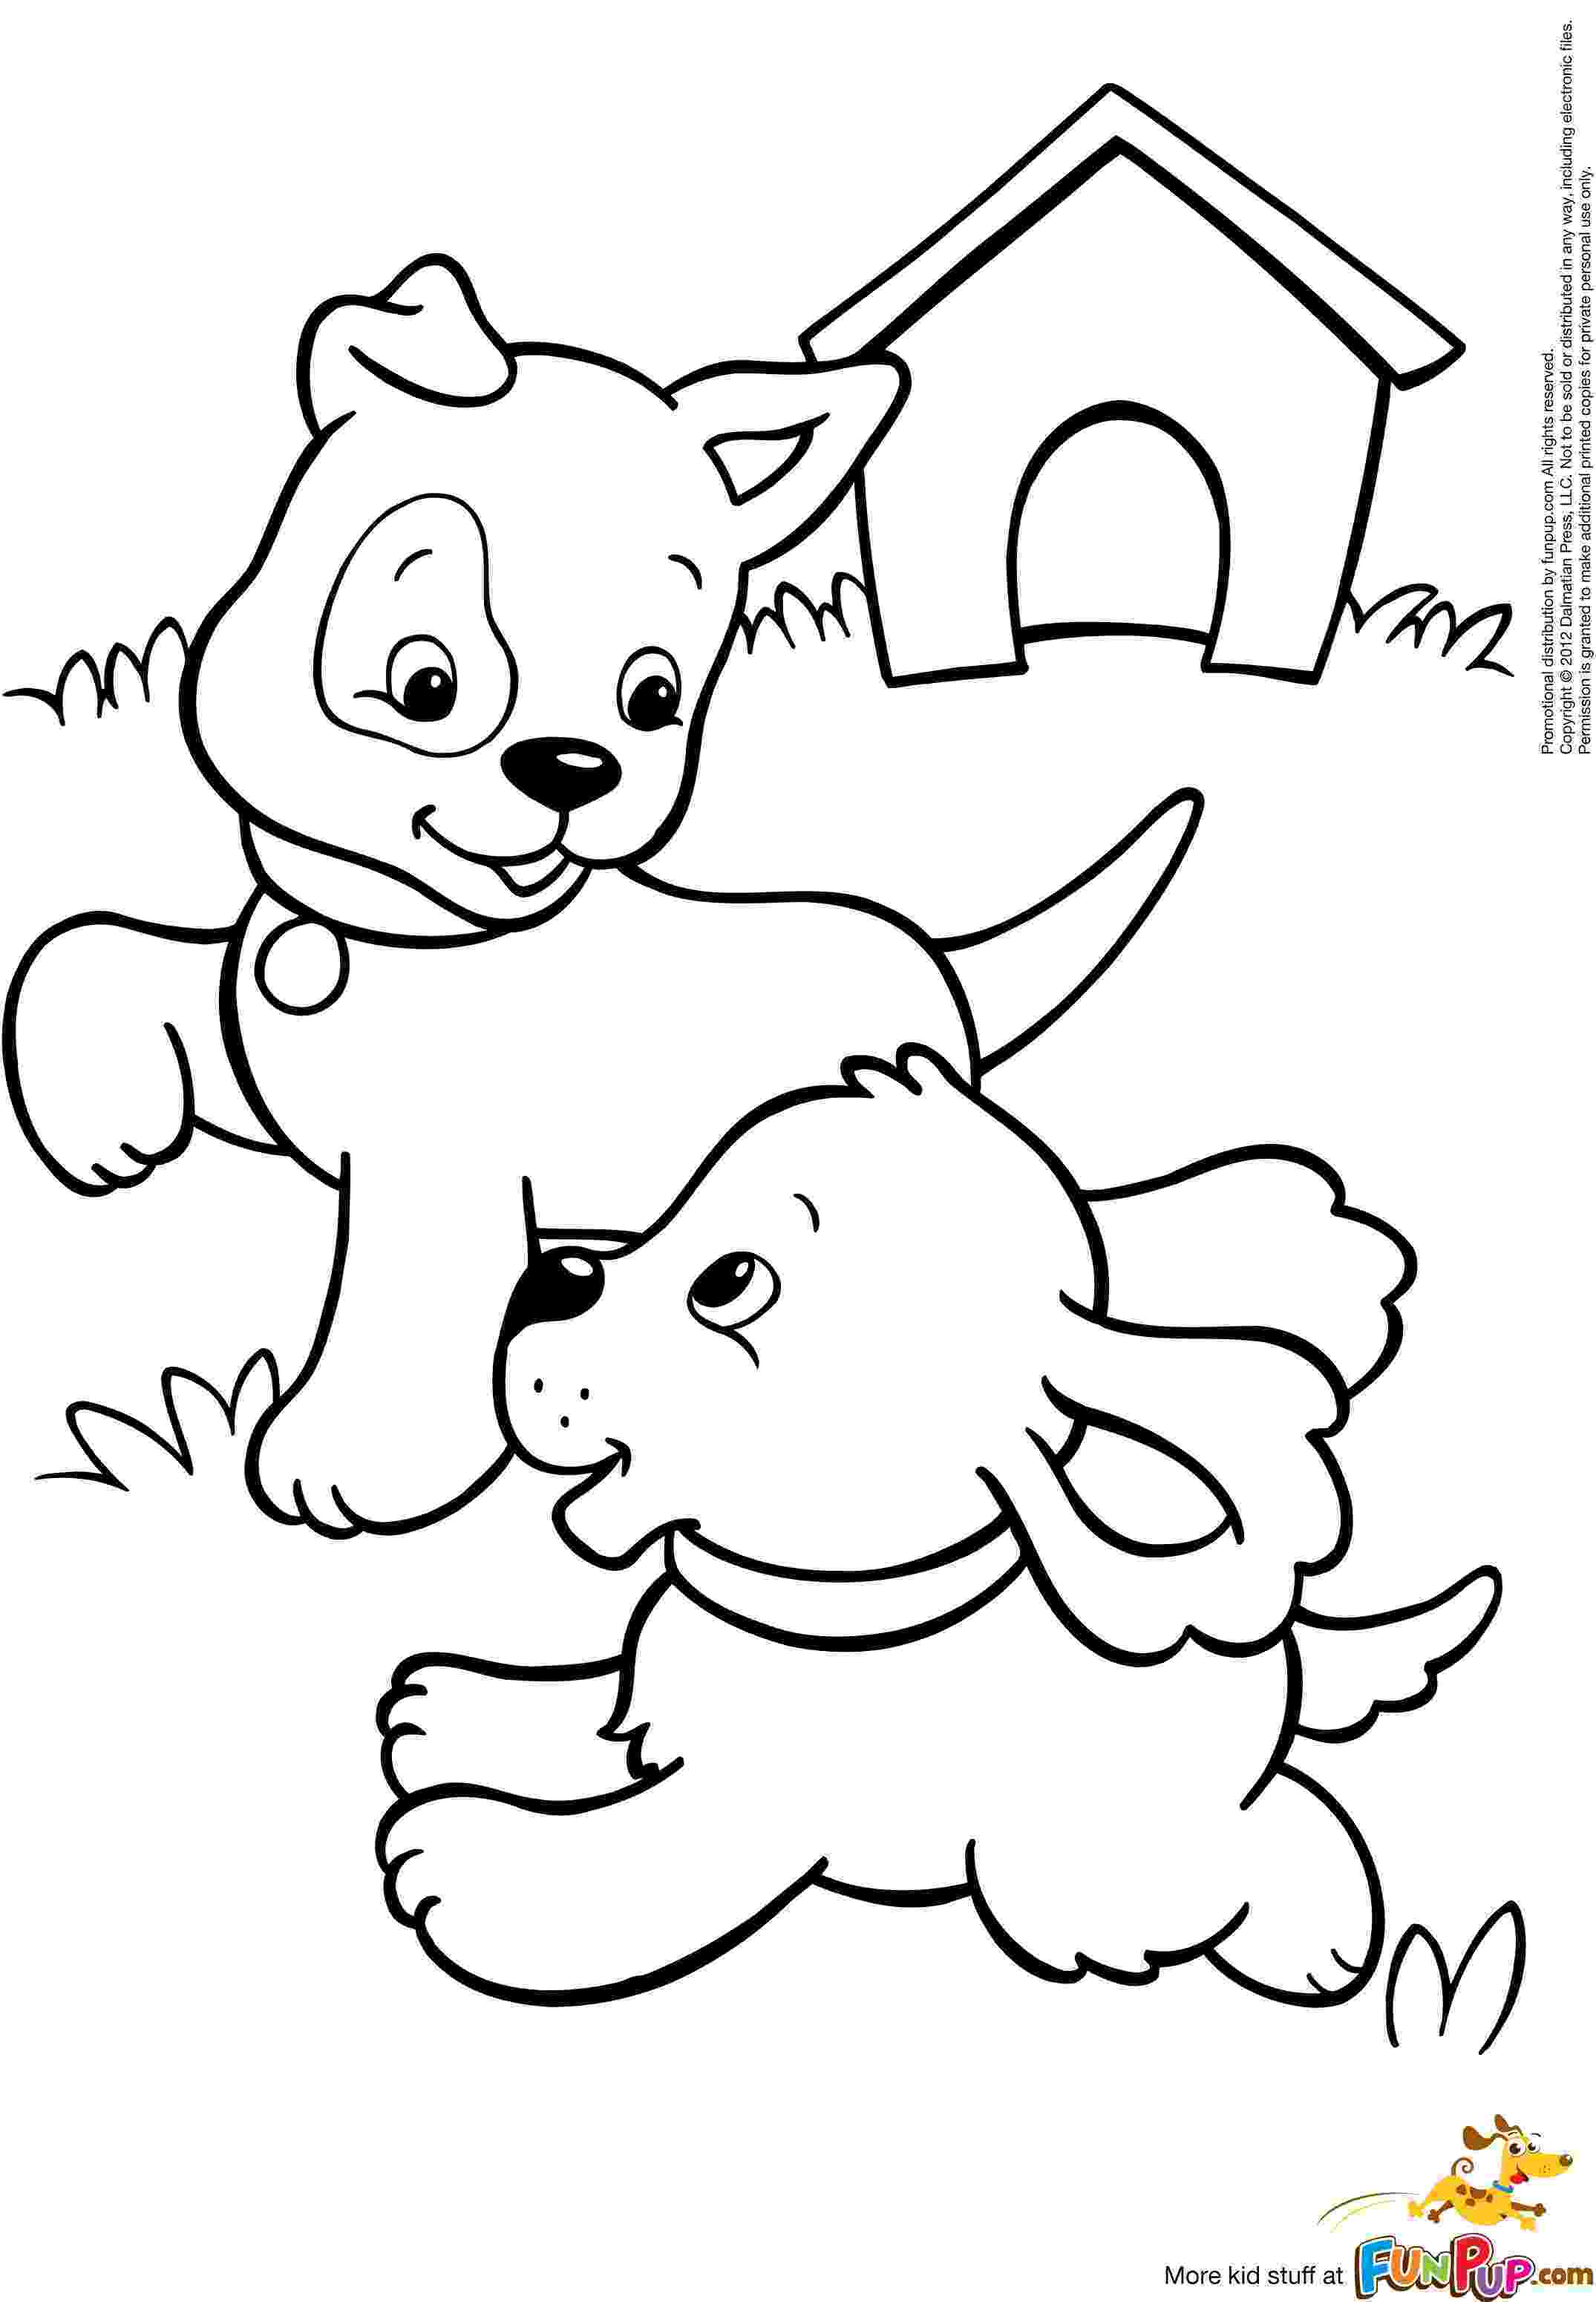 dog pictures to print out free print out dog coloring pages for kids puppy pictures out dog to print